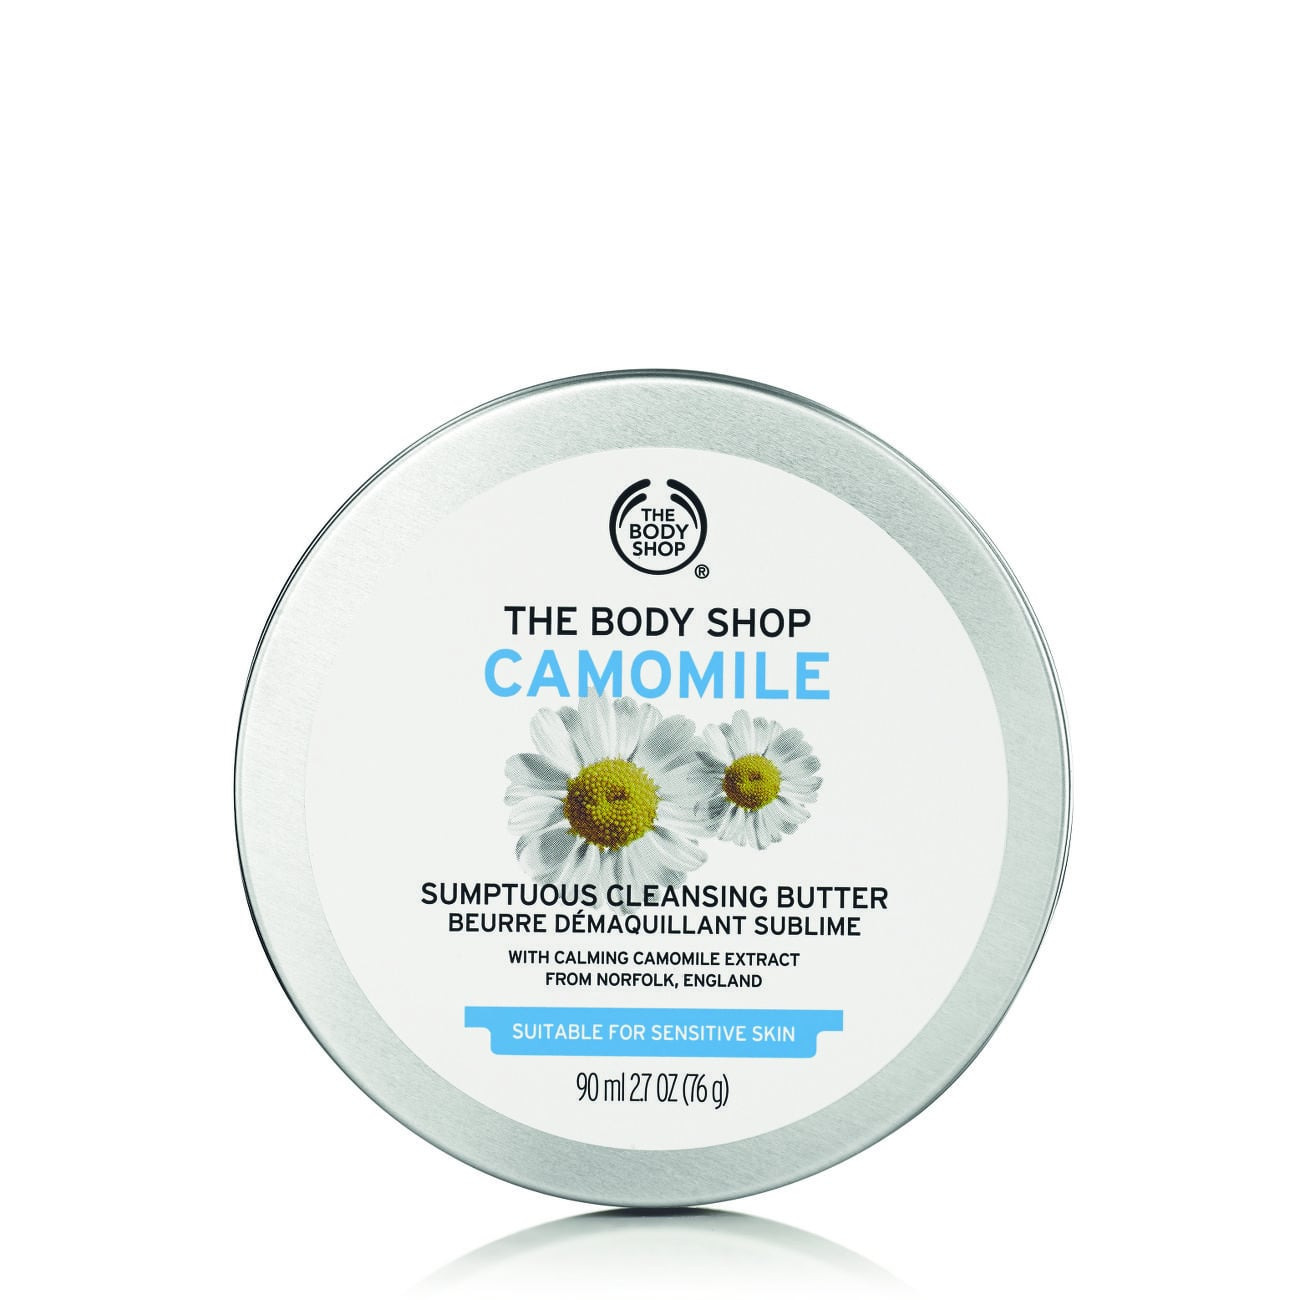 This Cleansing Butter Has Nearly 300 5-Star Reviews and Costs Less Than $10